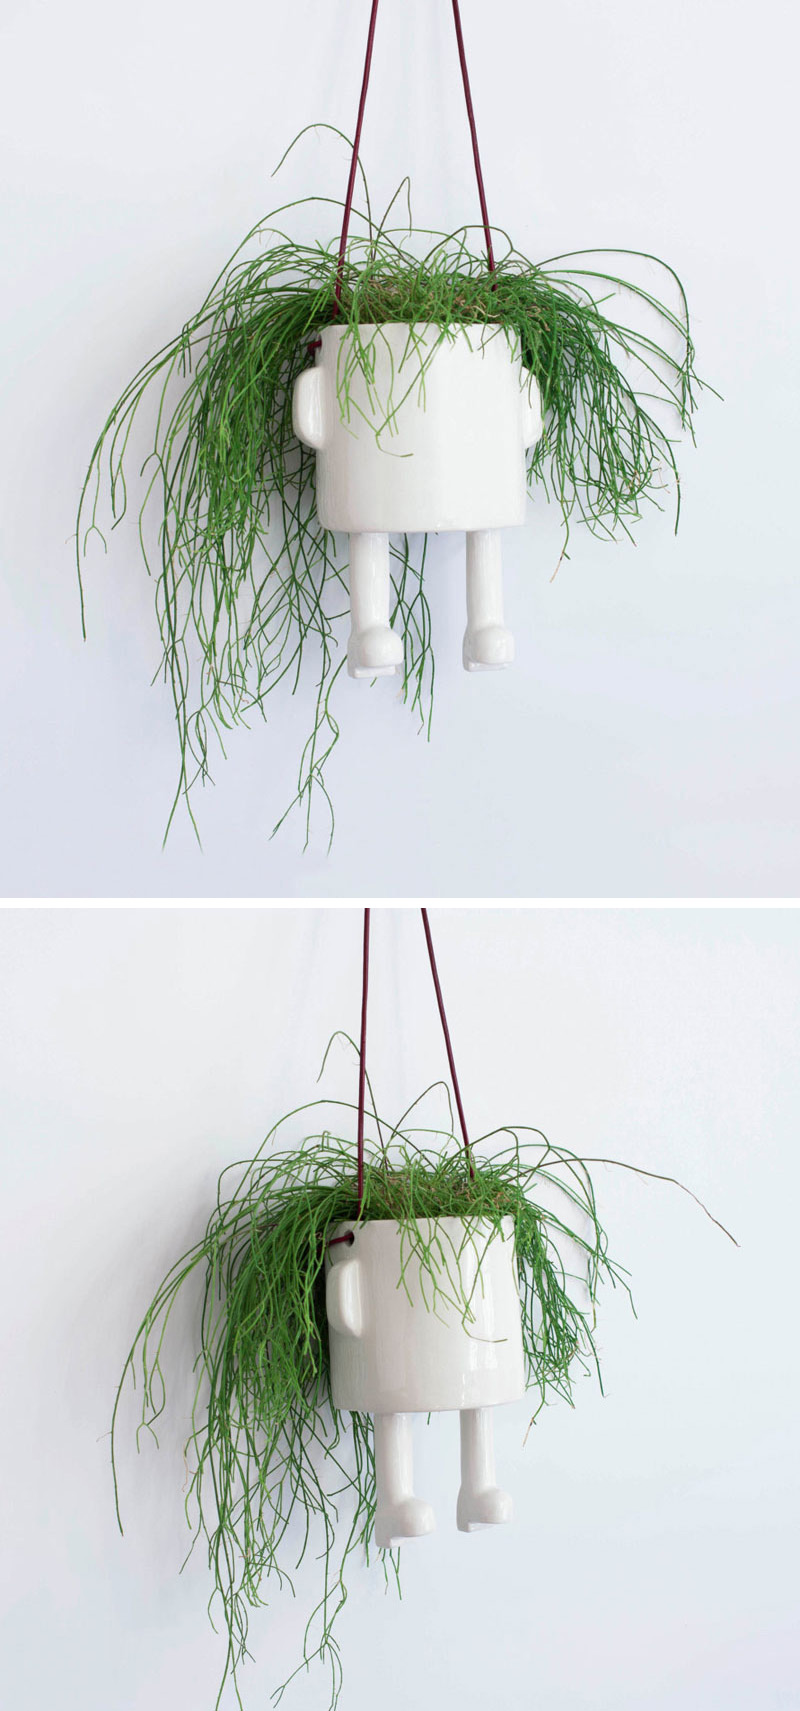 Fun and whimsical, this person-shaped white ceramic hanging planter is the ultimate home for a small plant, and lets you choose the hairstyle for your planter.  #HangingPlanter #ModernPlanter #HomeDecor #Garden #Plants